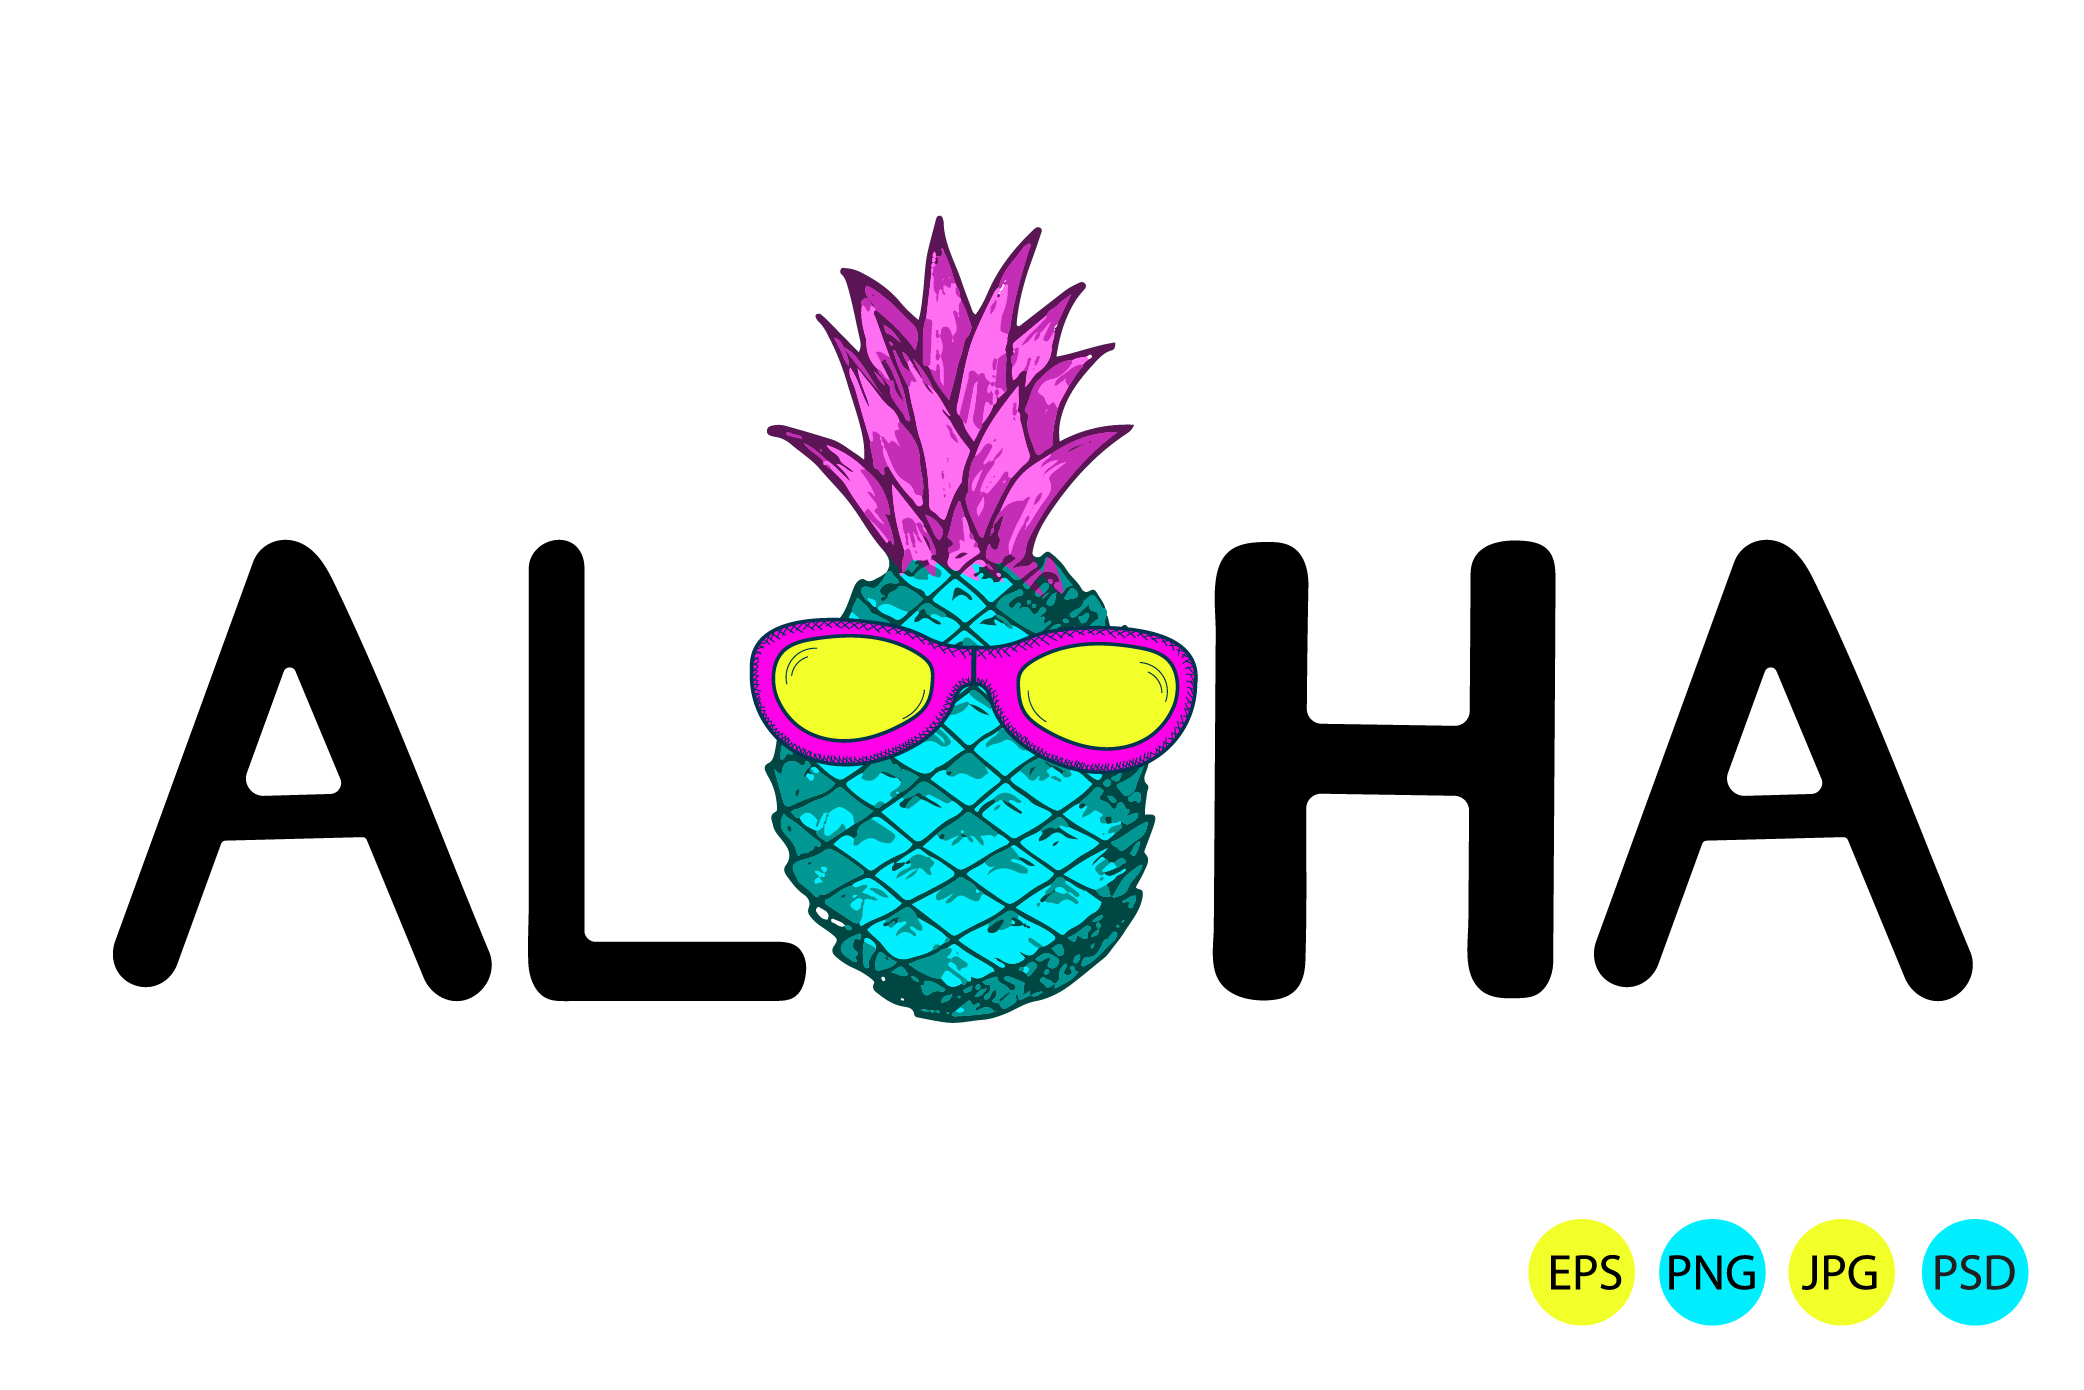 Aloha. Pineapple with sunglasses. Eps, jpg, psd, png example image 1